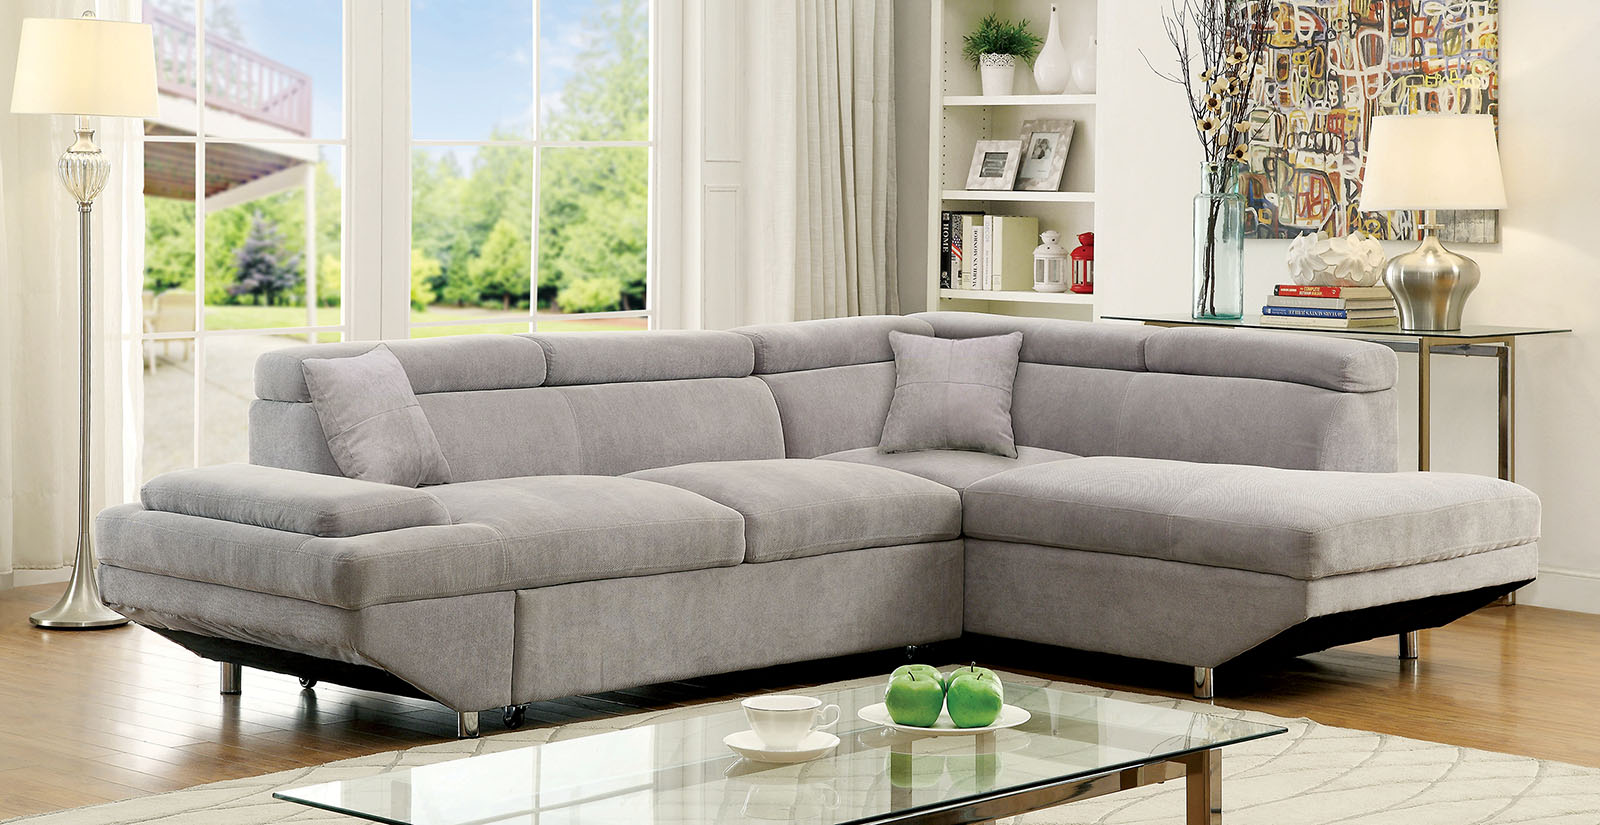 Furniture Of America 6124gy Gray Modern Sleeper Sectional Sofa